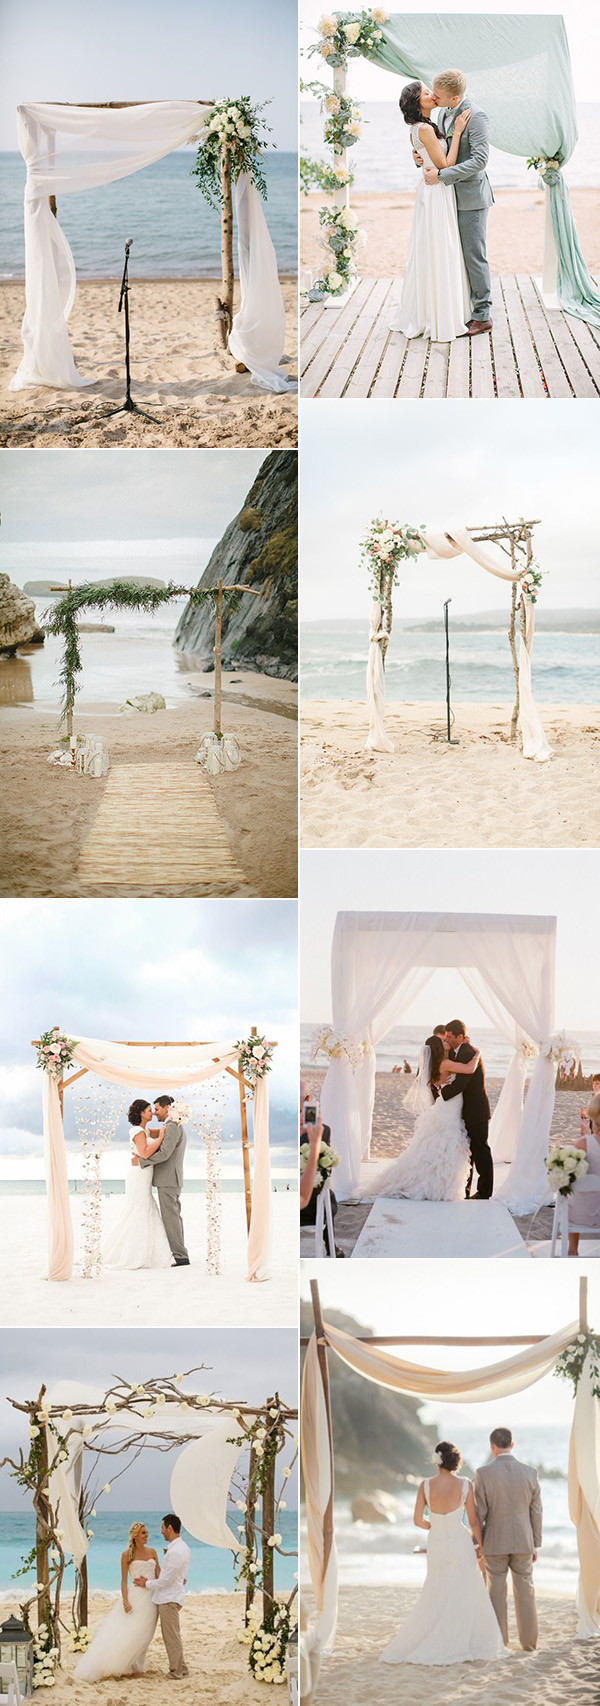 Outside Wedding Decorations Ideas And